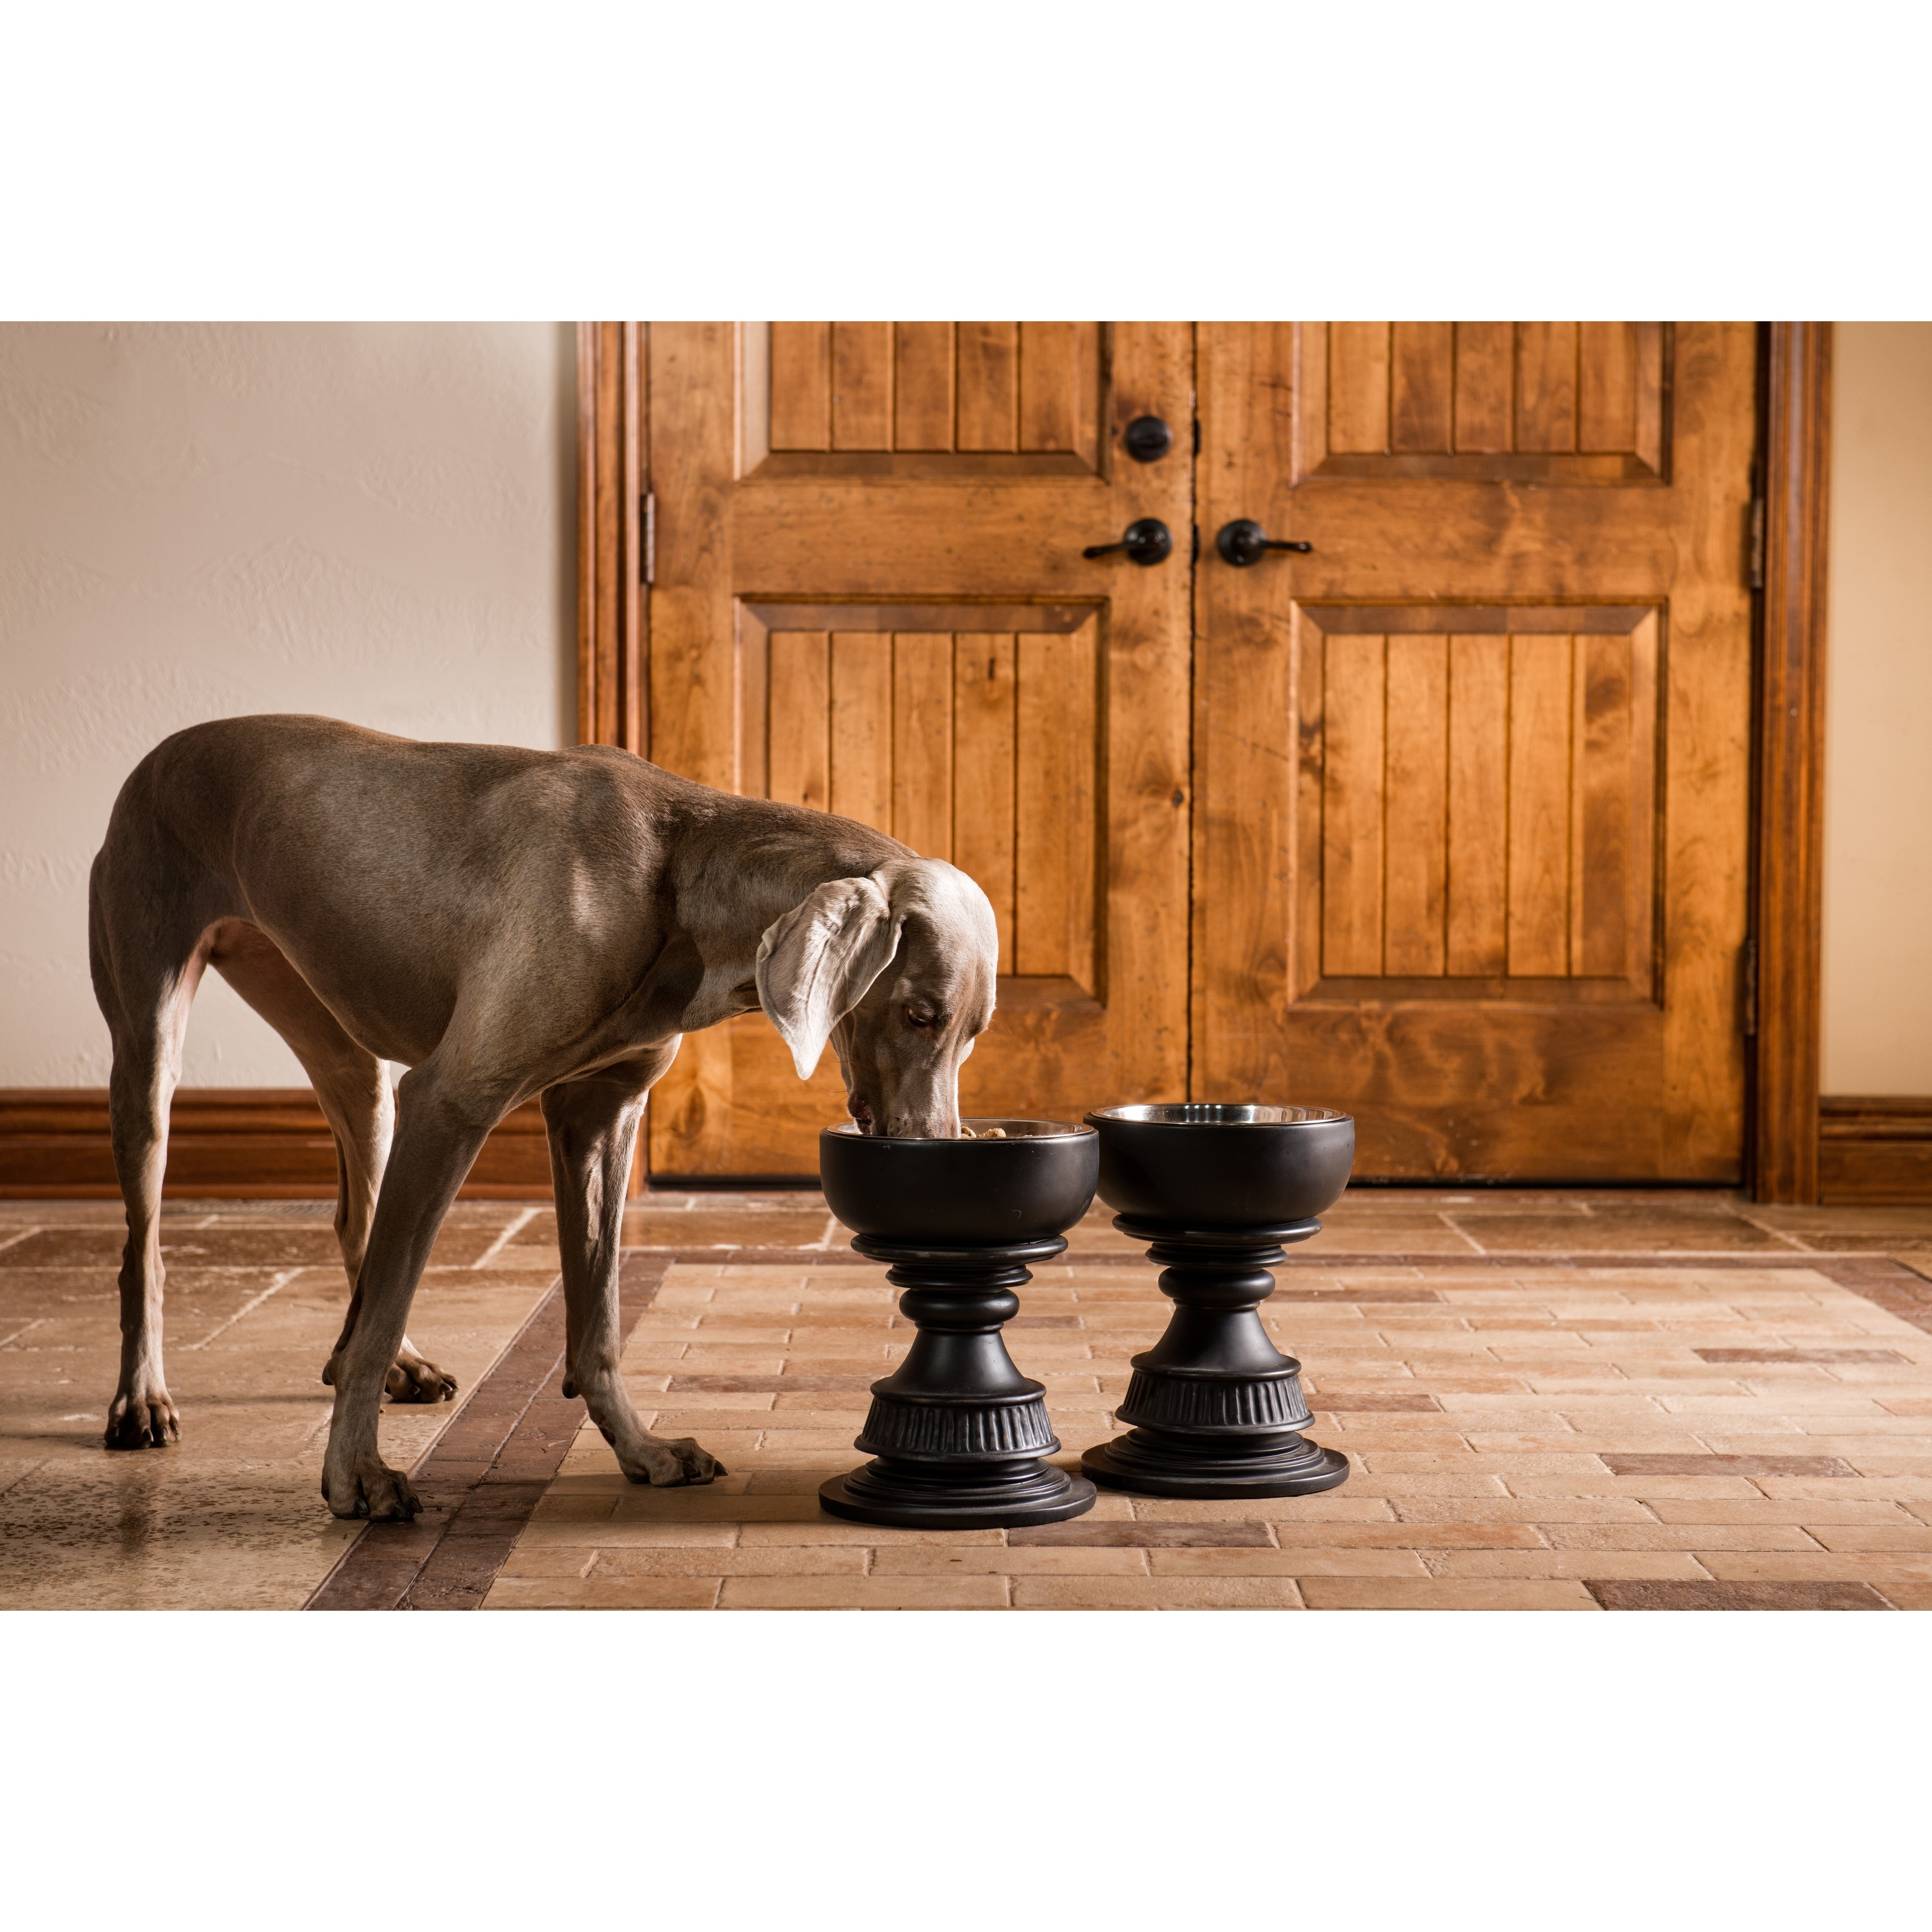 free pet today feeders eco overstock shipping product supplies feeder friendly raised indipets